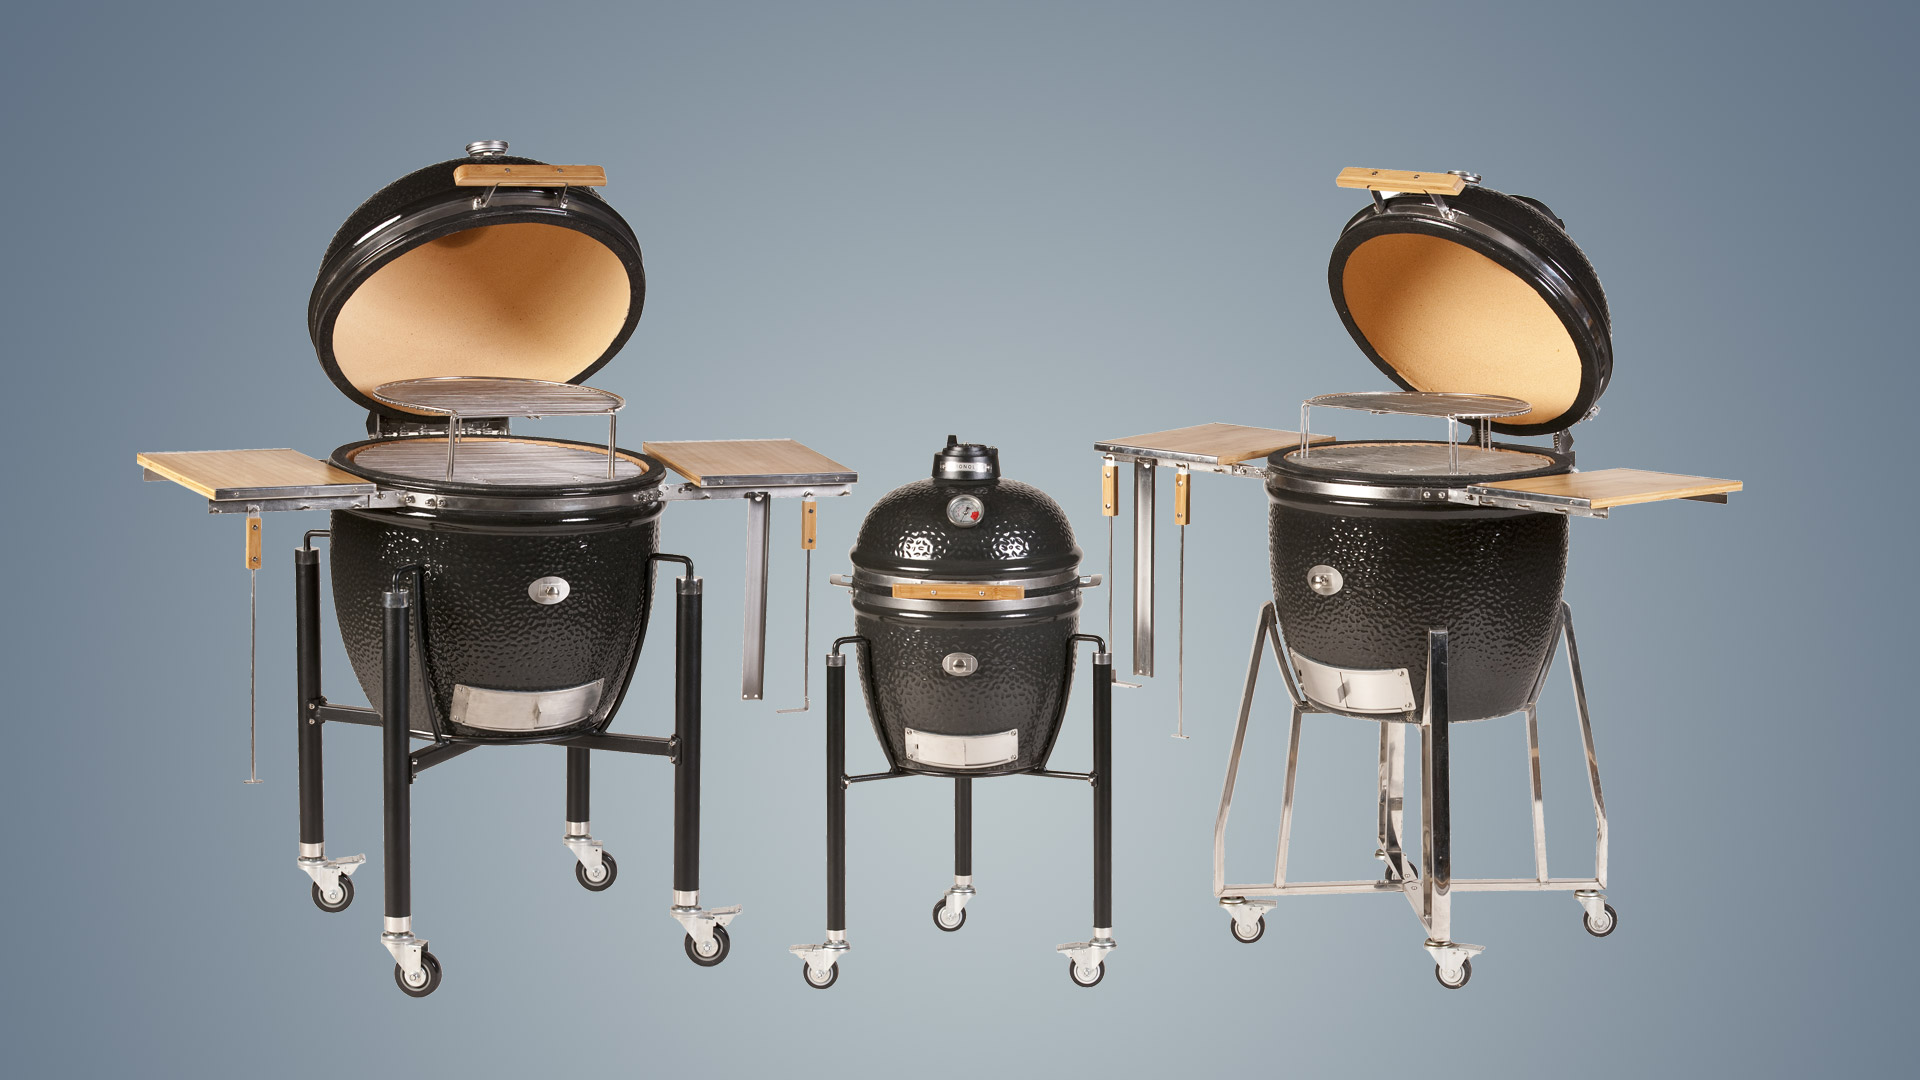 Monolith kamado barbecue range of three sizes